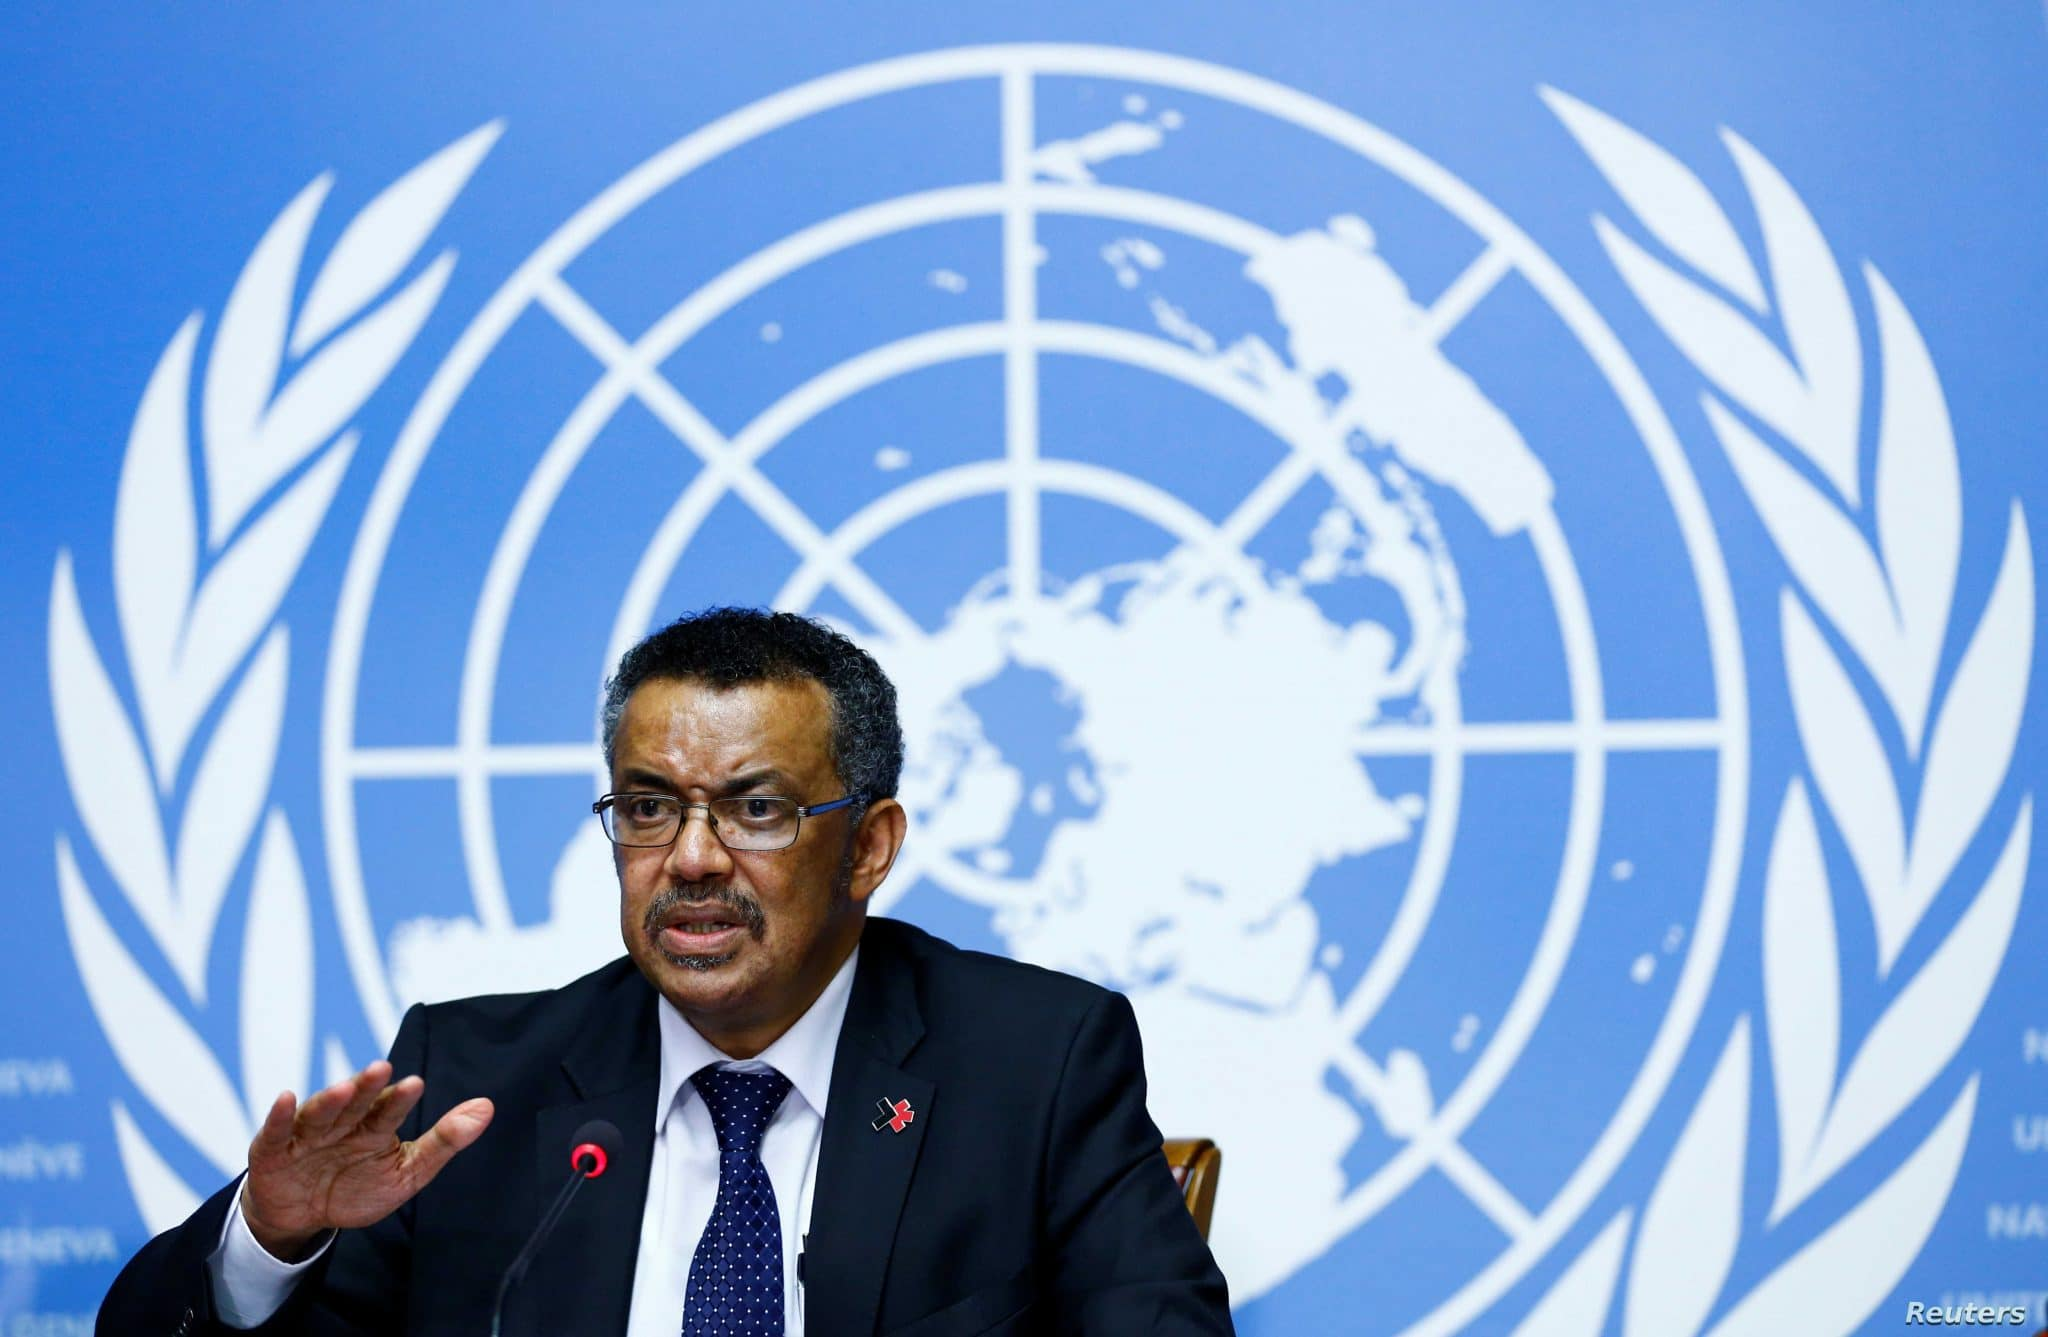 The World Health Organisation (who) Says The Fight Against Coronavirus (covid 19) Is Affecting The Fight Against Polio And Other Diseases. Dr Tedros Ghebreyesus, The Director General Of The Organis